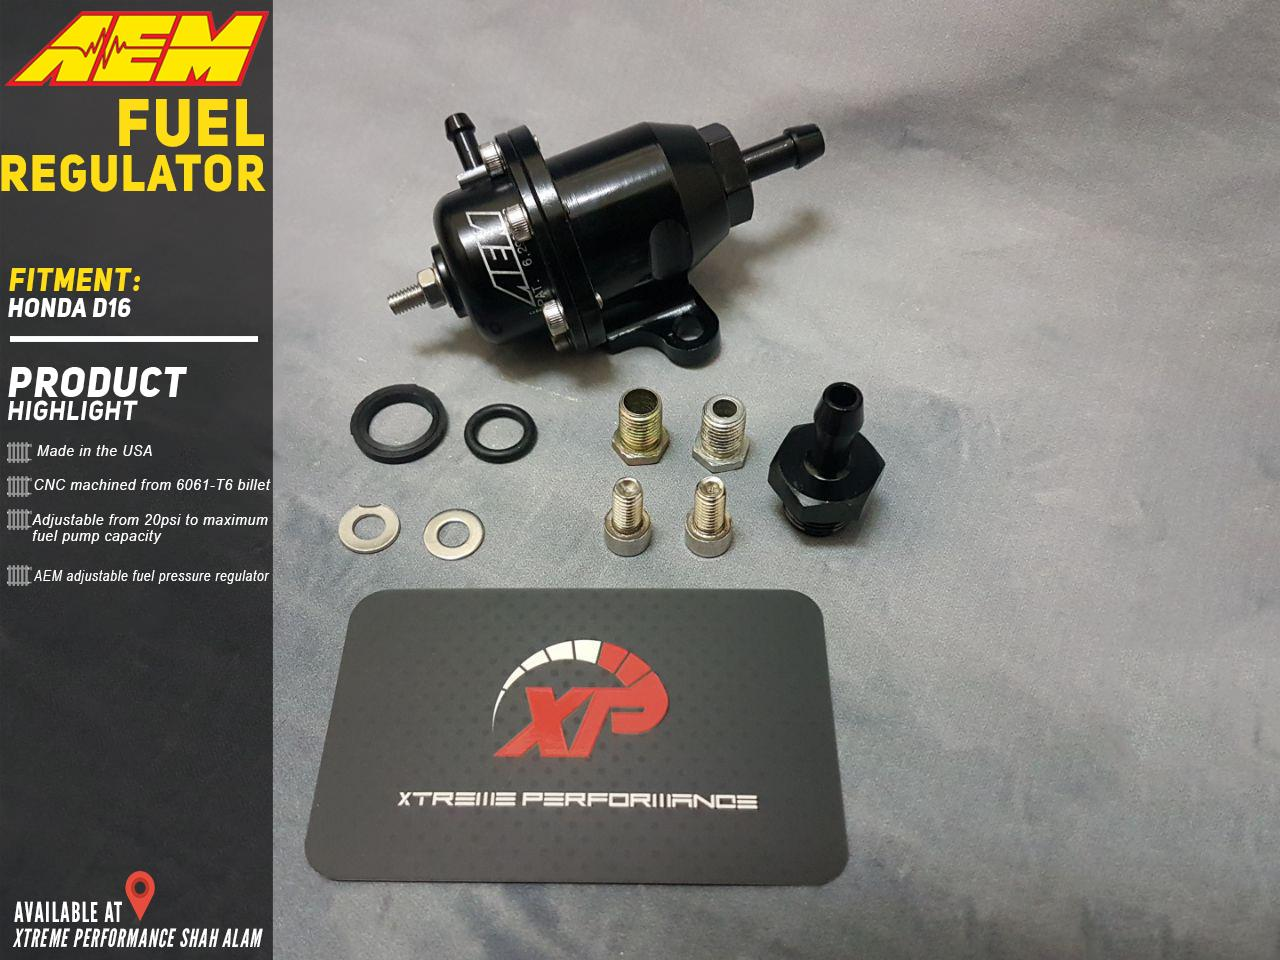 Fuel regulator AEM For Honda D16 Black anodized